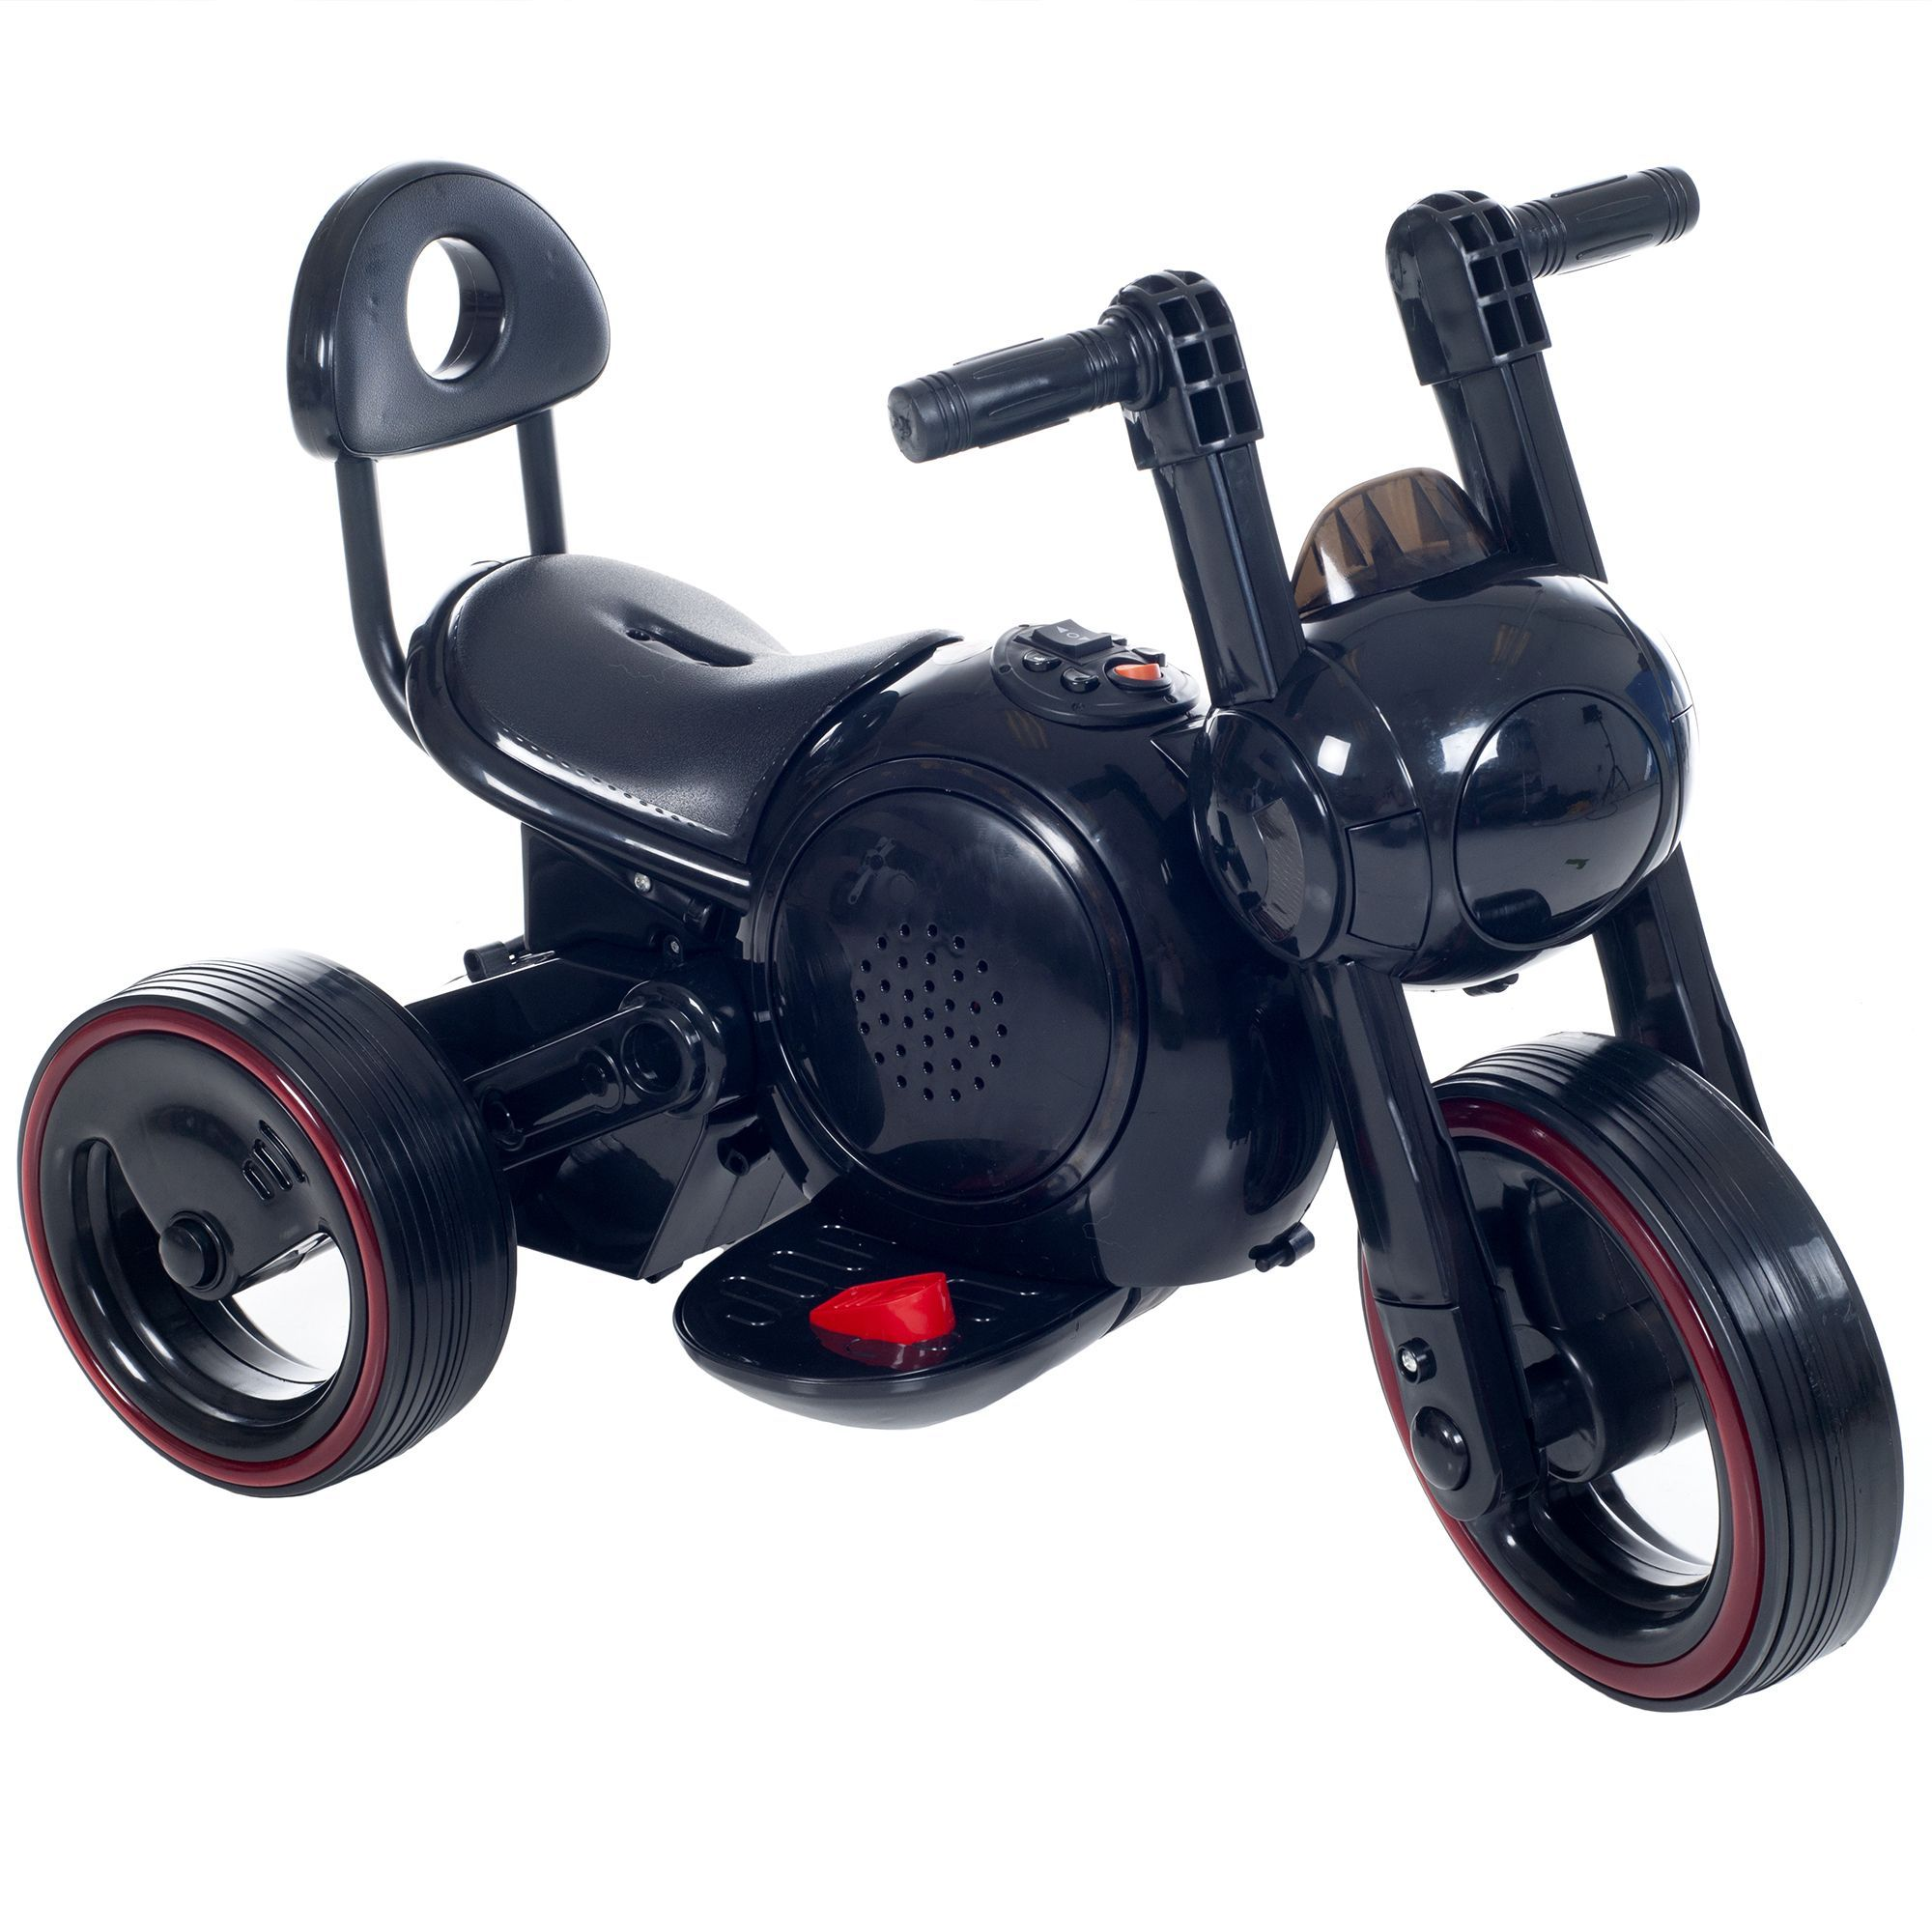 Jeep toys for kids  Rockinu Rollers Ride on Toy  Wheel LED Mini Motorcycle for Kids by